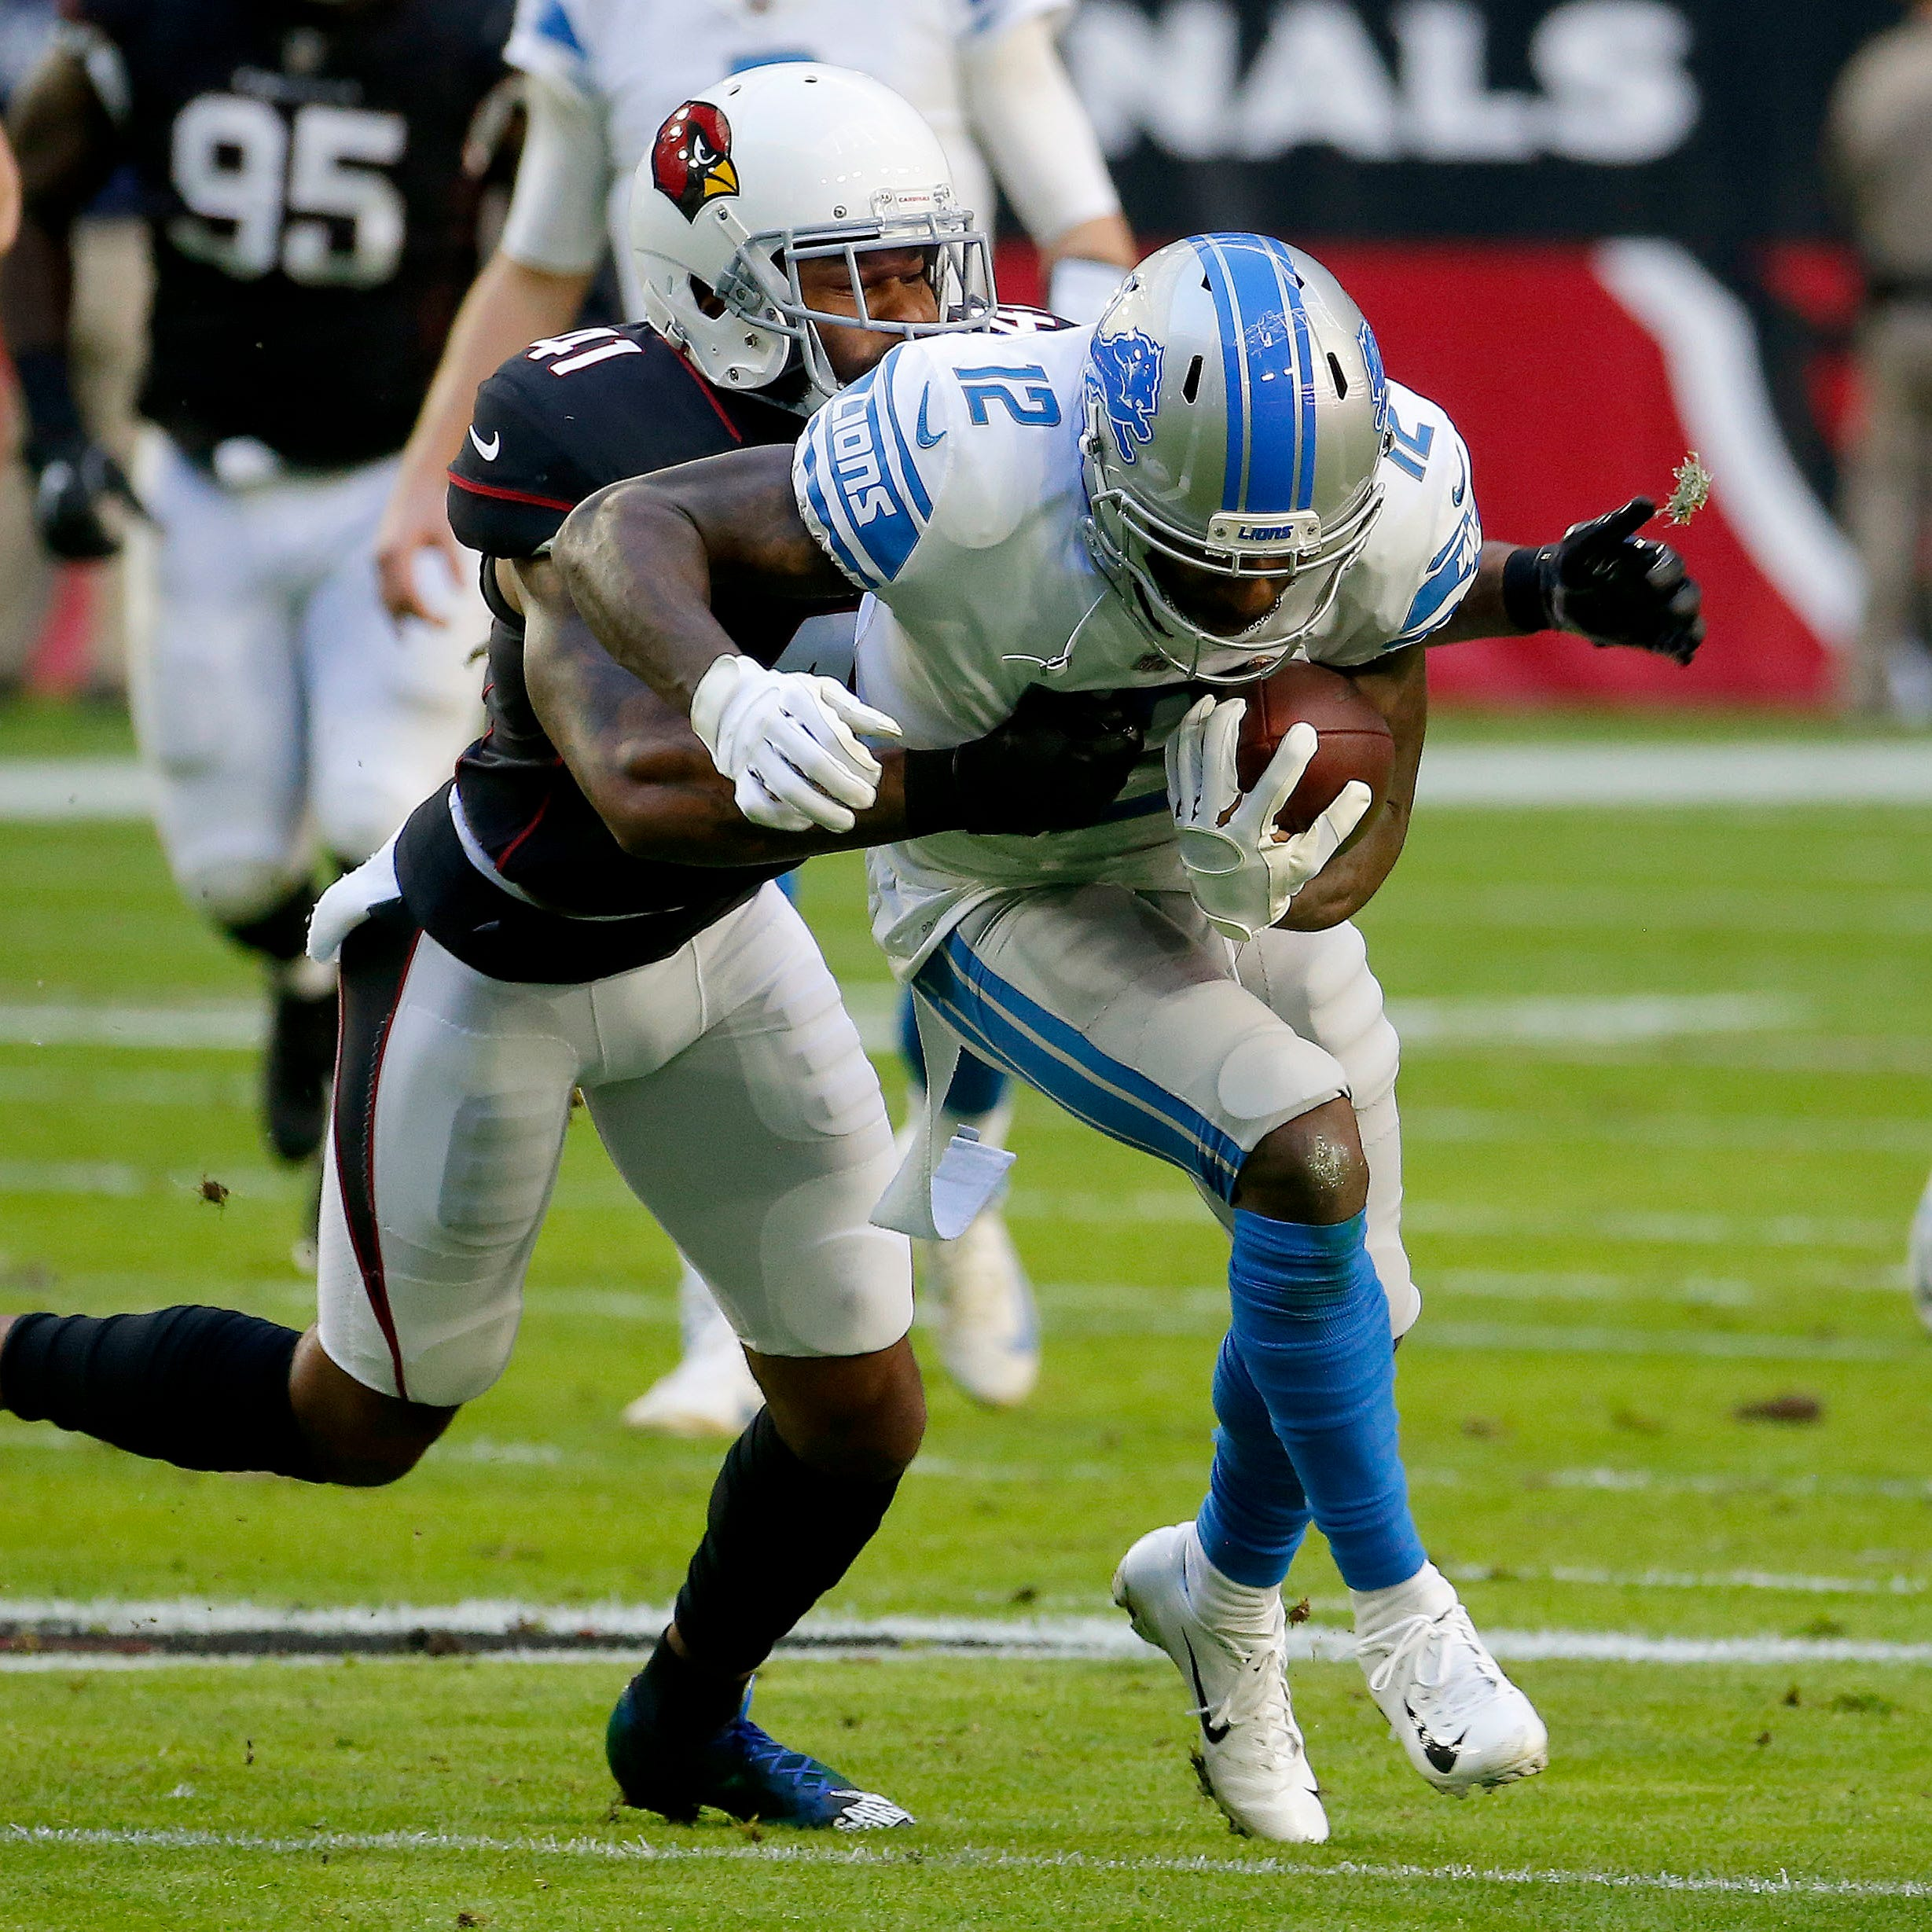 Live updates: Lions-Cardinals scoreless to start 2Q